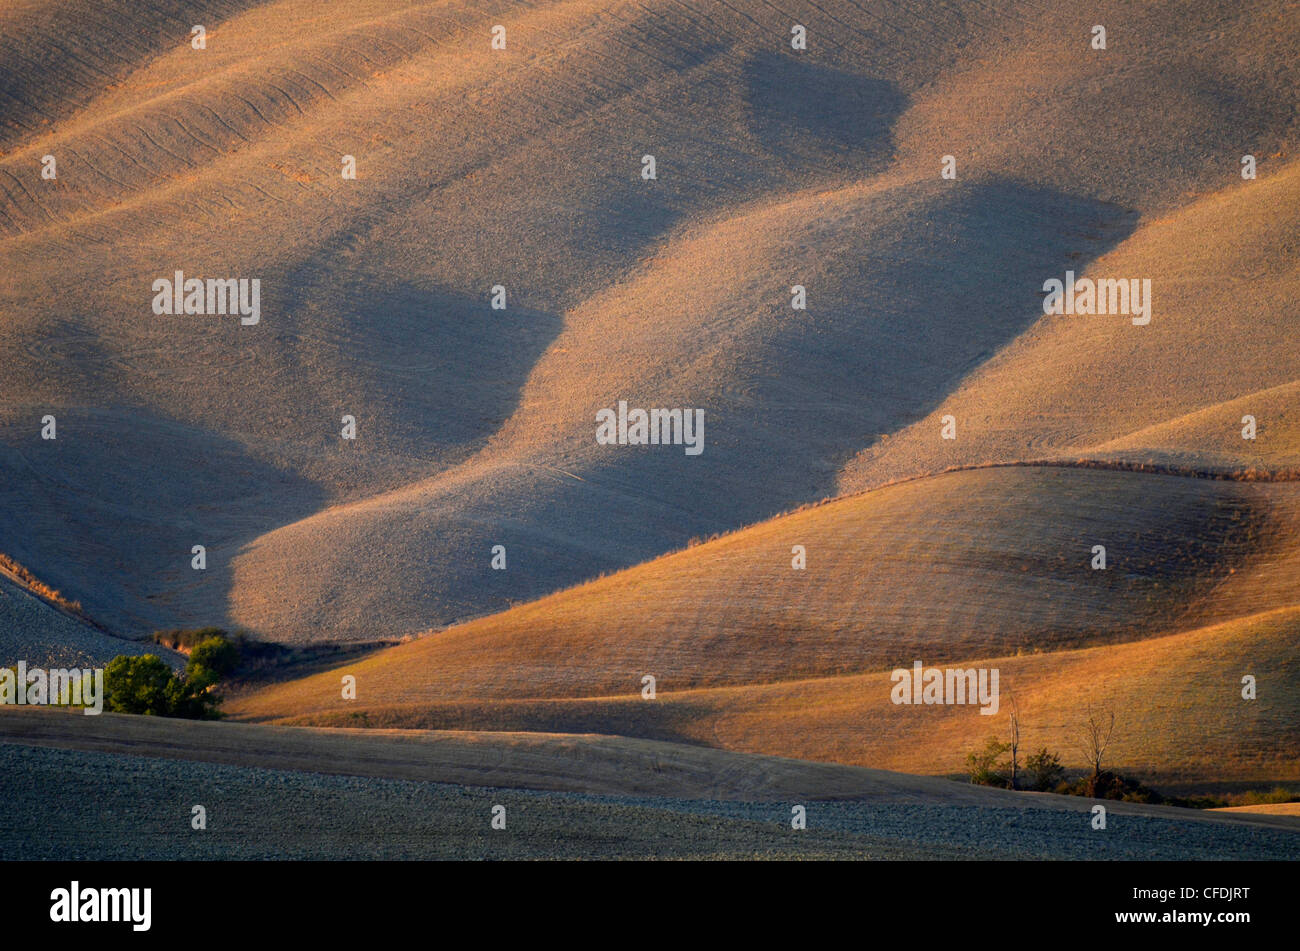 View of hilly landscape of the Crete, Tuscany, Italy, Europe - Stock Image